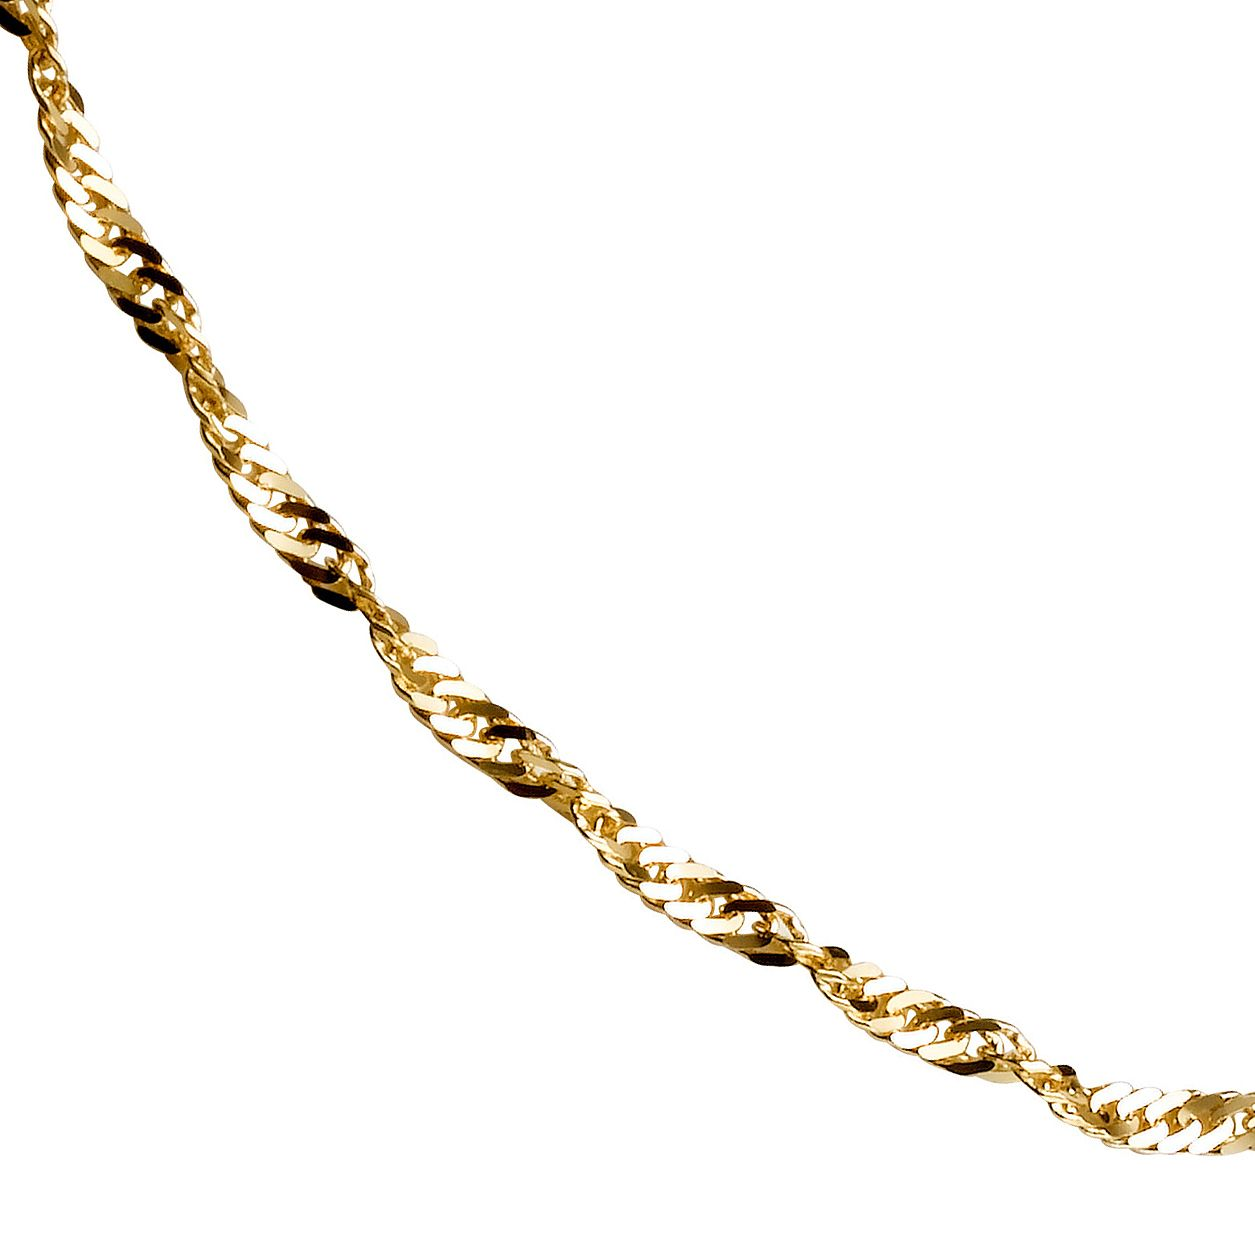 necklace gold n collection htm chain g alternative dufour p zoe views convertible curb